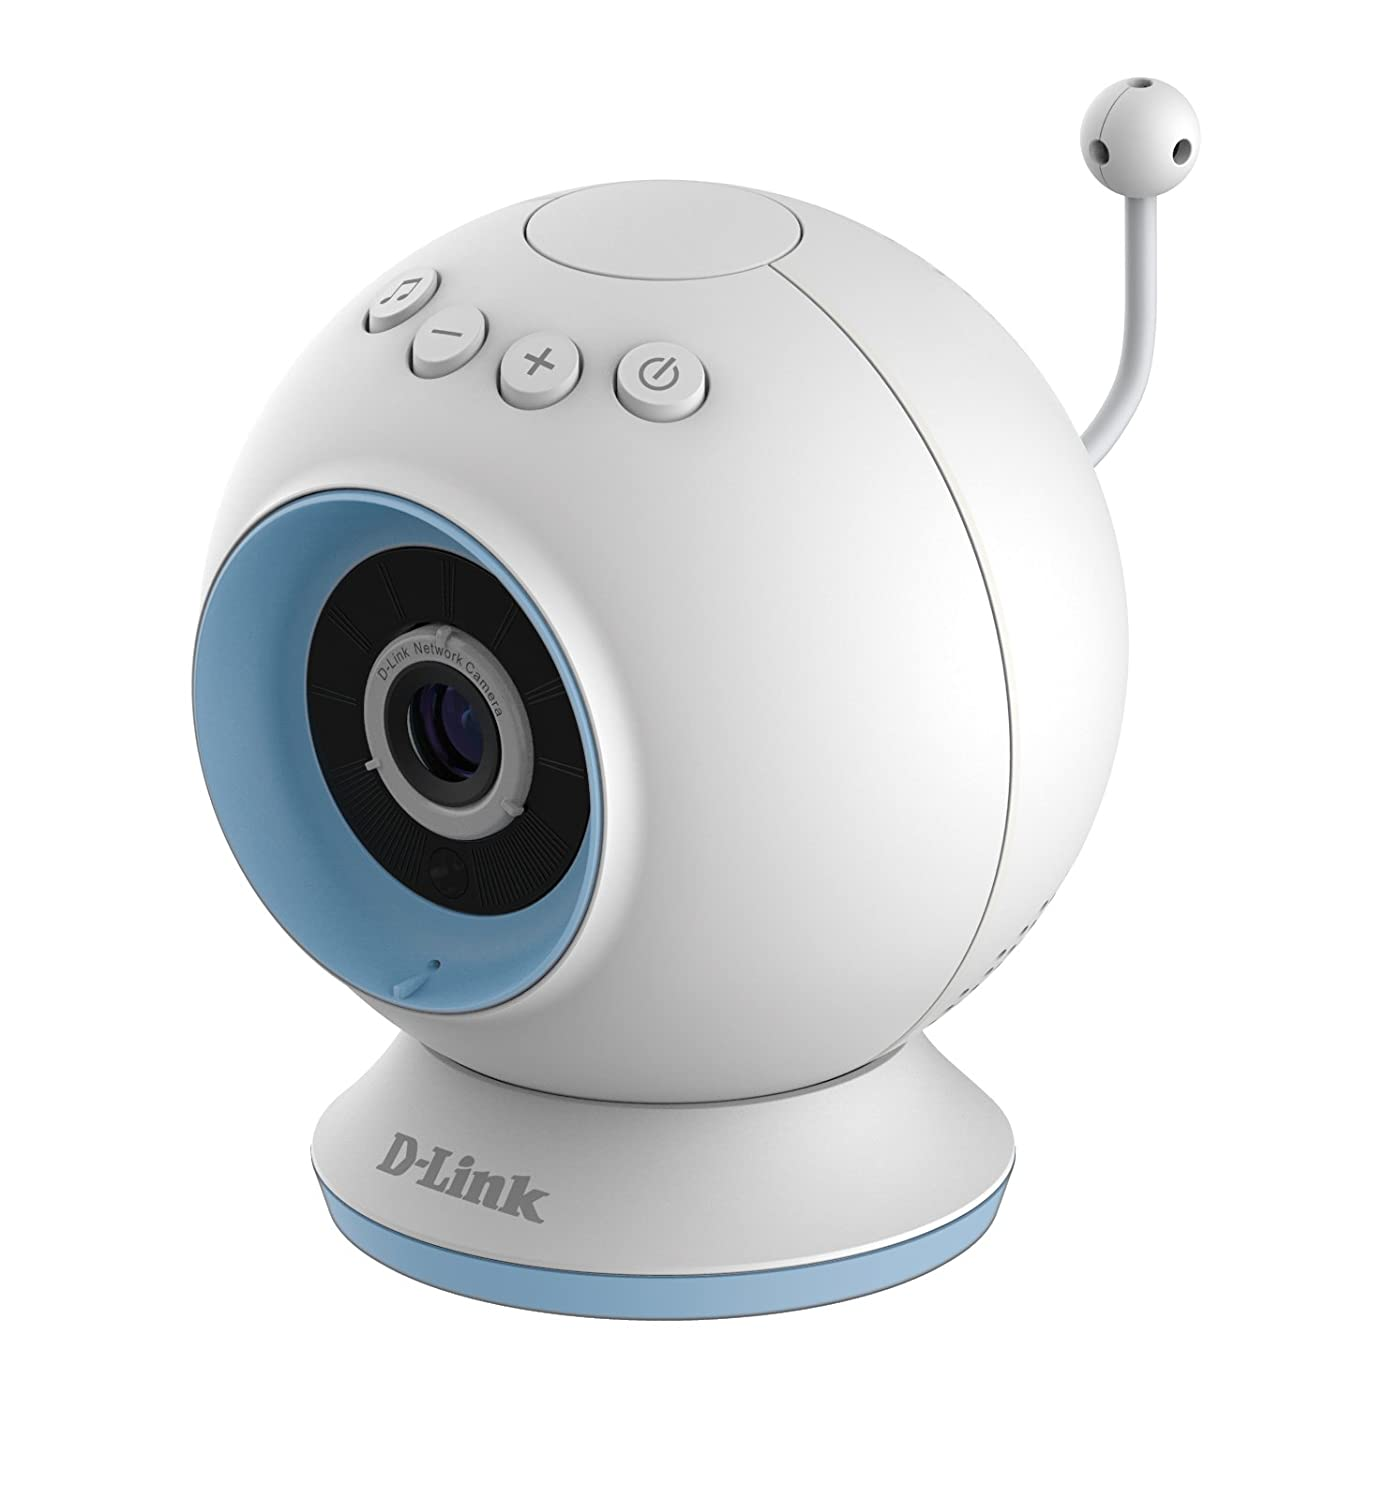 Baby Room Monitors baby room monitor This Smart Baby Monitor From D Link Boasts 720p Hd Video Quality Complete With Day And Night Vision Modes Two Way Audio Allows Parents To Comfort Their